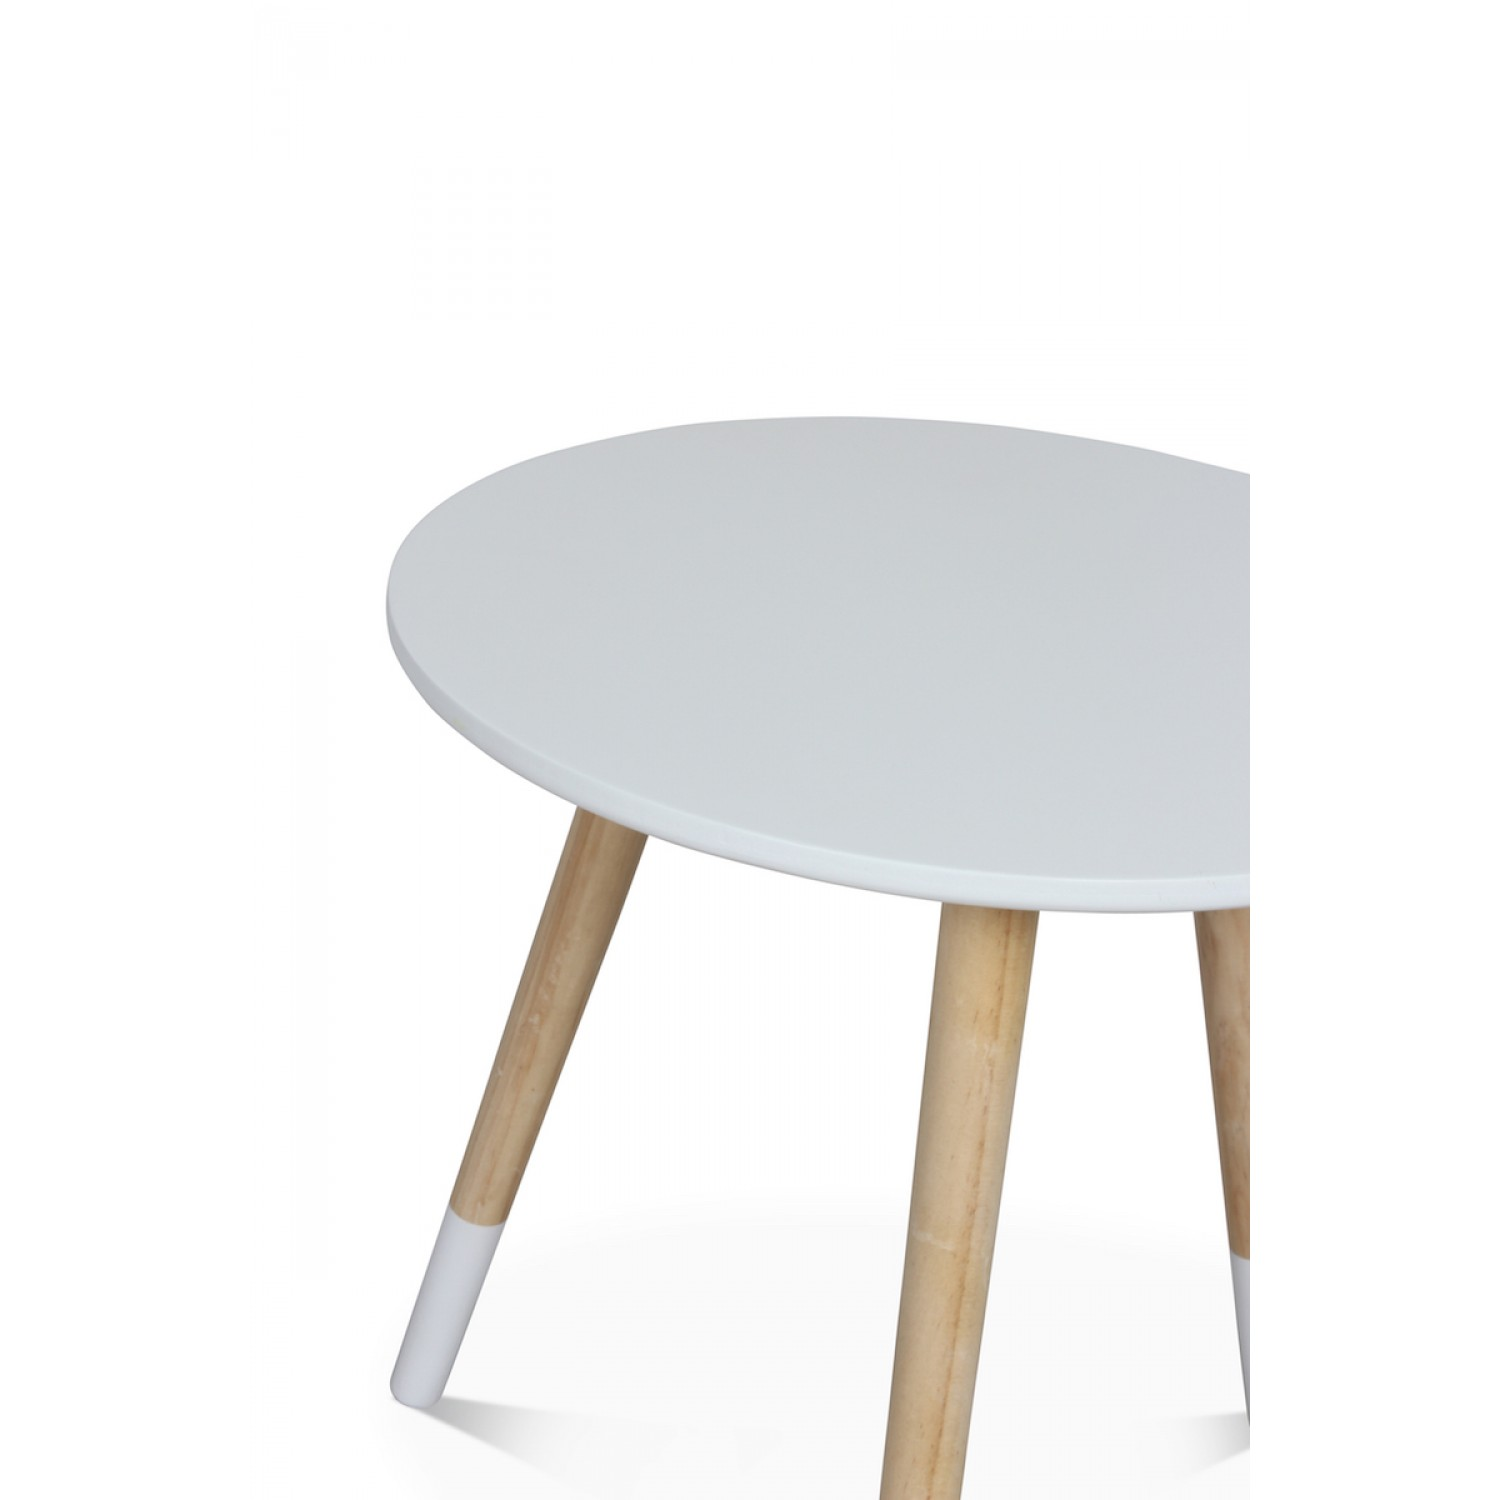 Table basse scandinave blanche gj kt diam tre 40 cm for Table basse scandinave blanche